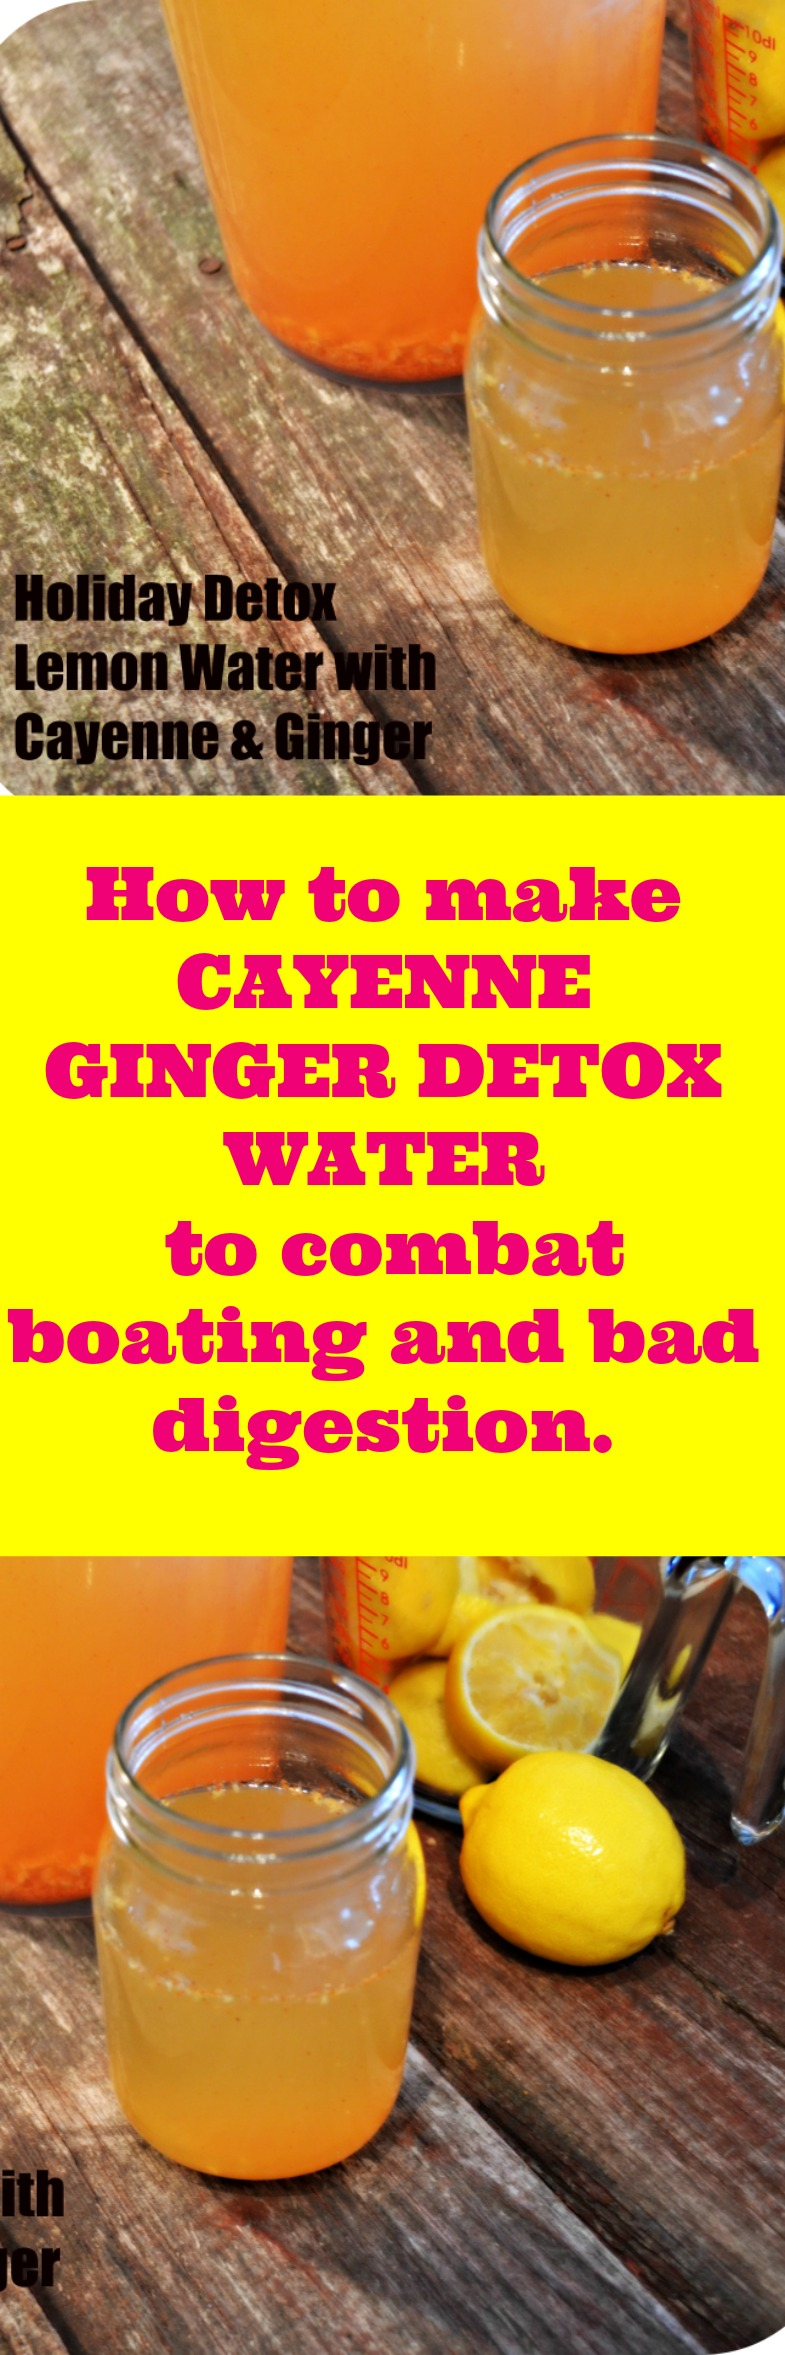 How to make CAYENNE GINGER DETOX WATER to combat boating and bad digestion